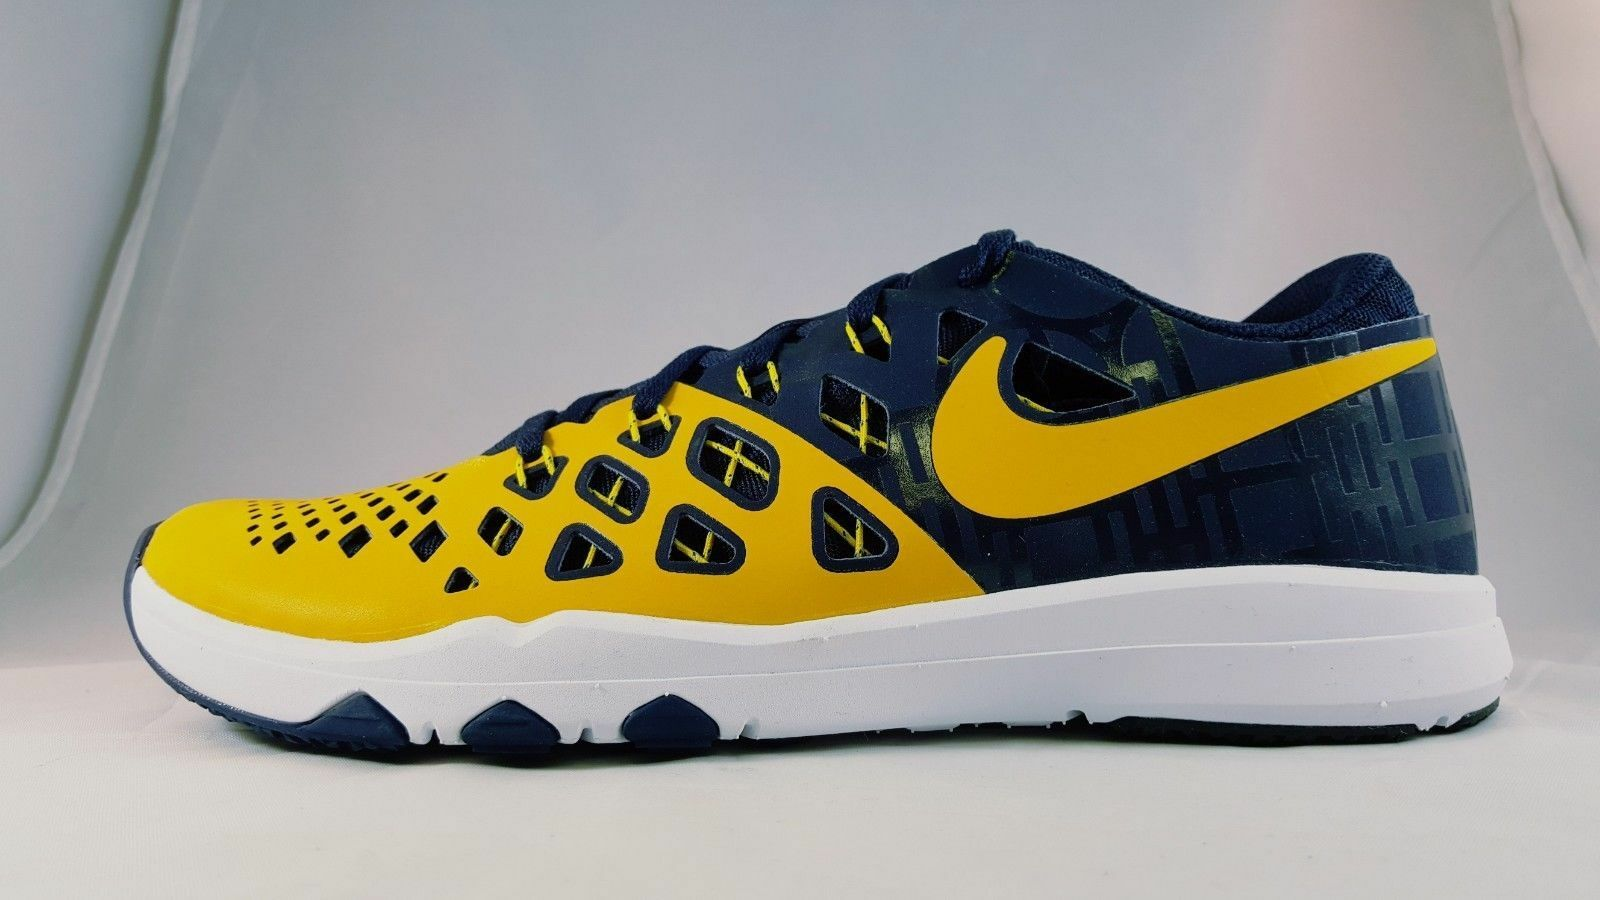 Nike Train Speed 4 AMP Michigan Wolverines Men's Shoes Size 8.5